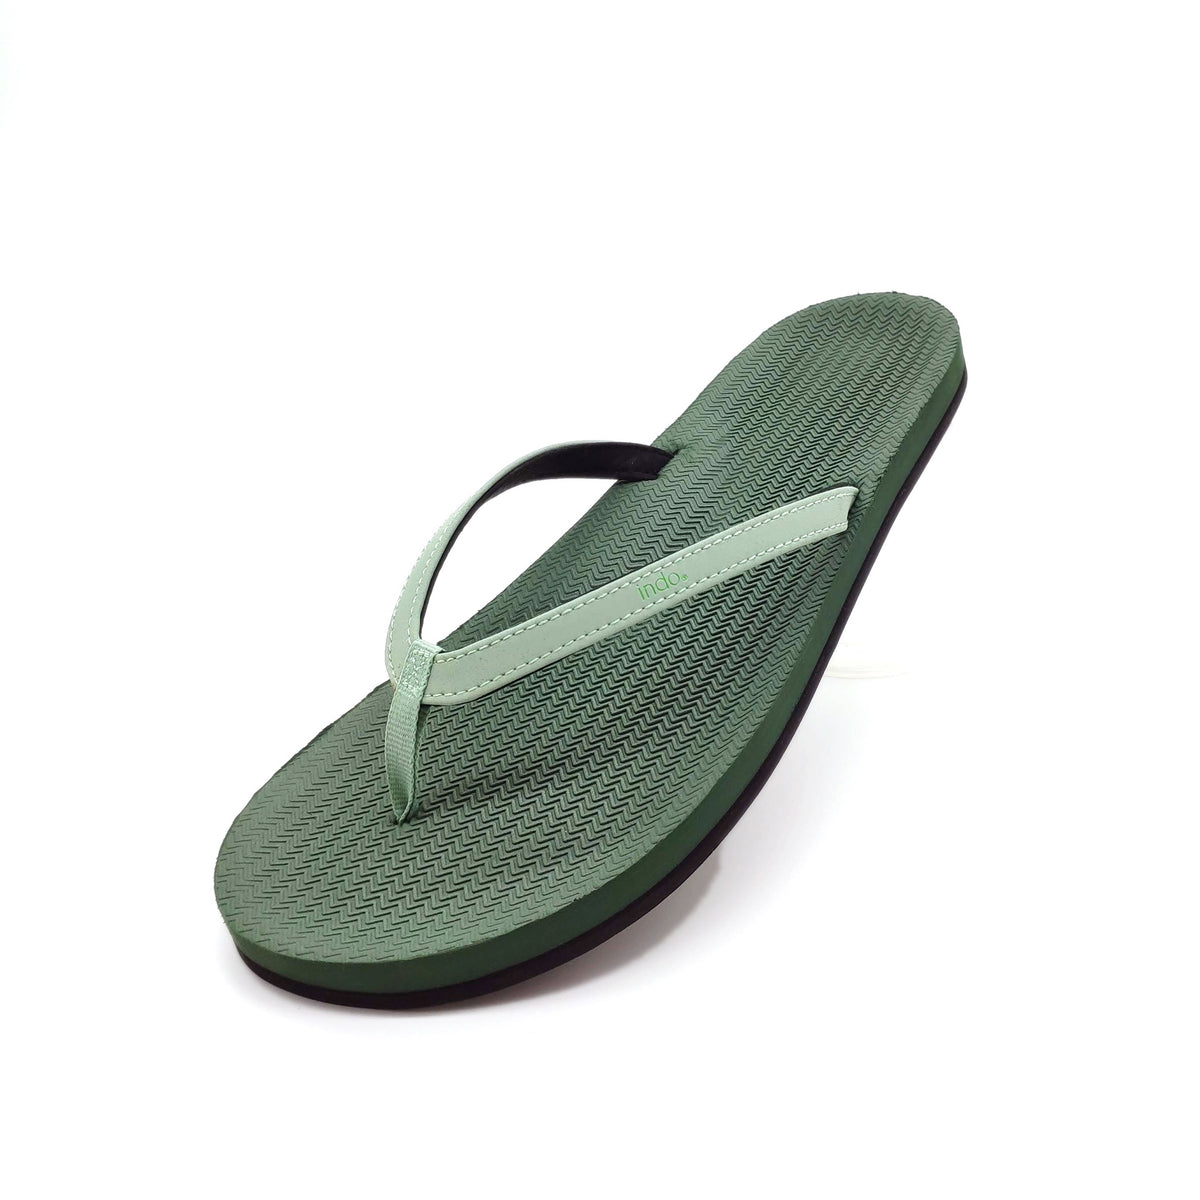 Women's Flip Flops Colour Combo Leaf/Leaf Light - Lightweight, durable, waterproof, comfortable. Sustainably made vegan shoes using natural rubber and recycled tires